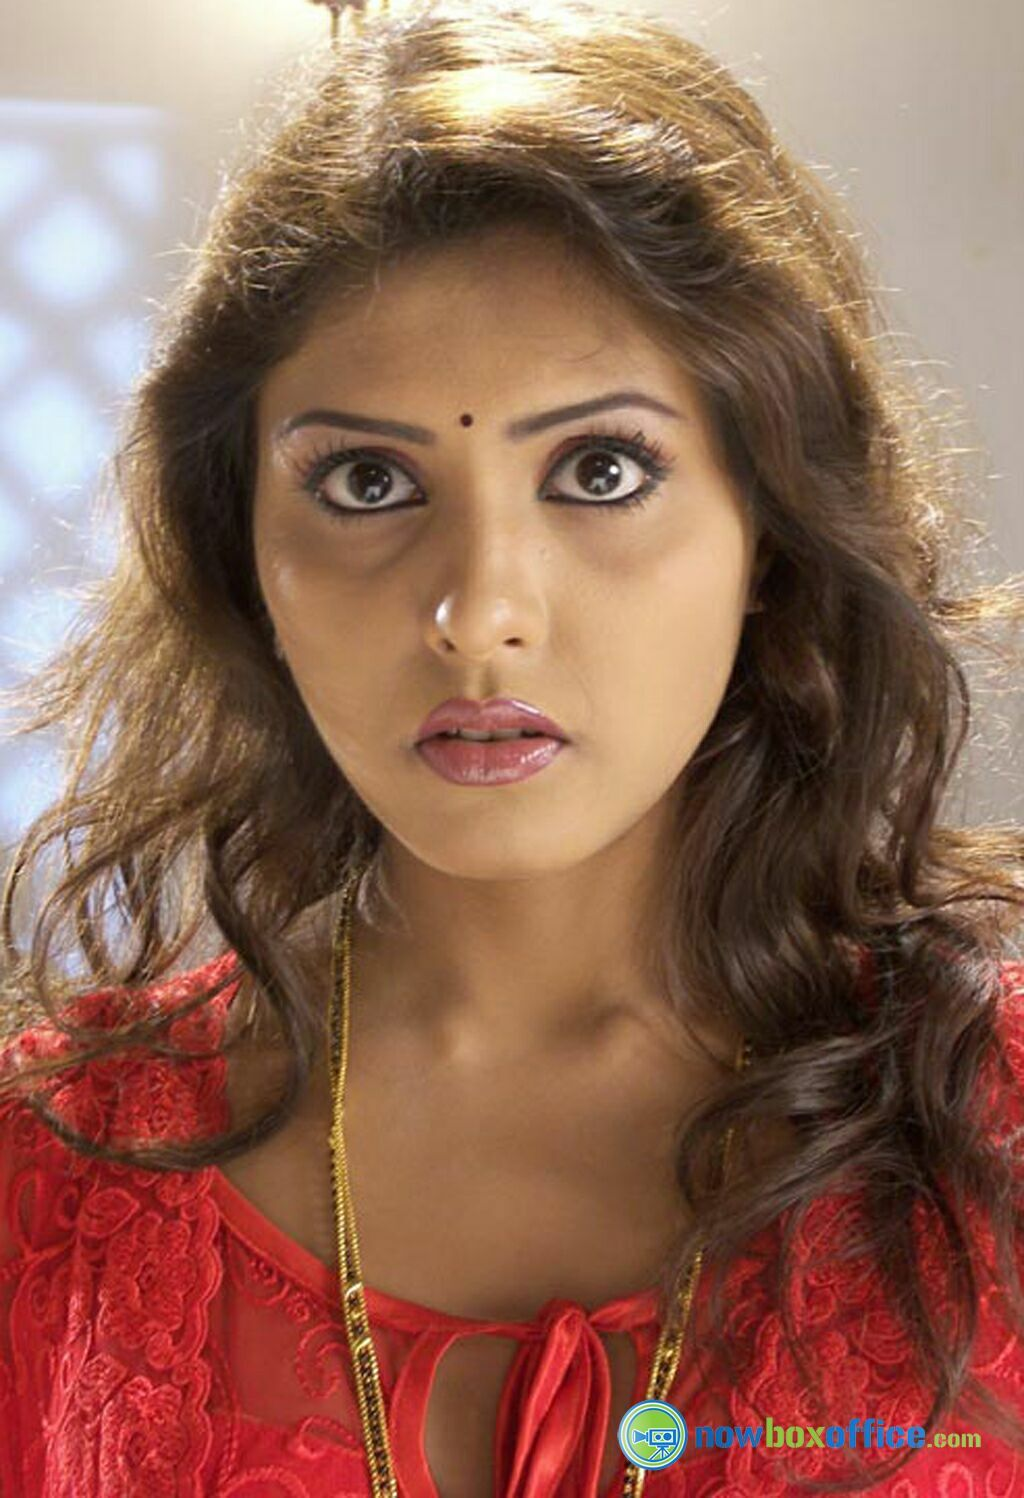 Madhu Shalini Nude Photos Cool 3046 madhu shalini [126.6]10++ ♥♥♥♥{hyderabad, india} info